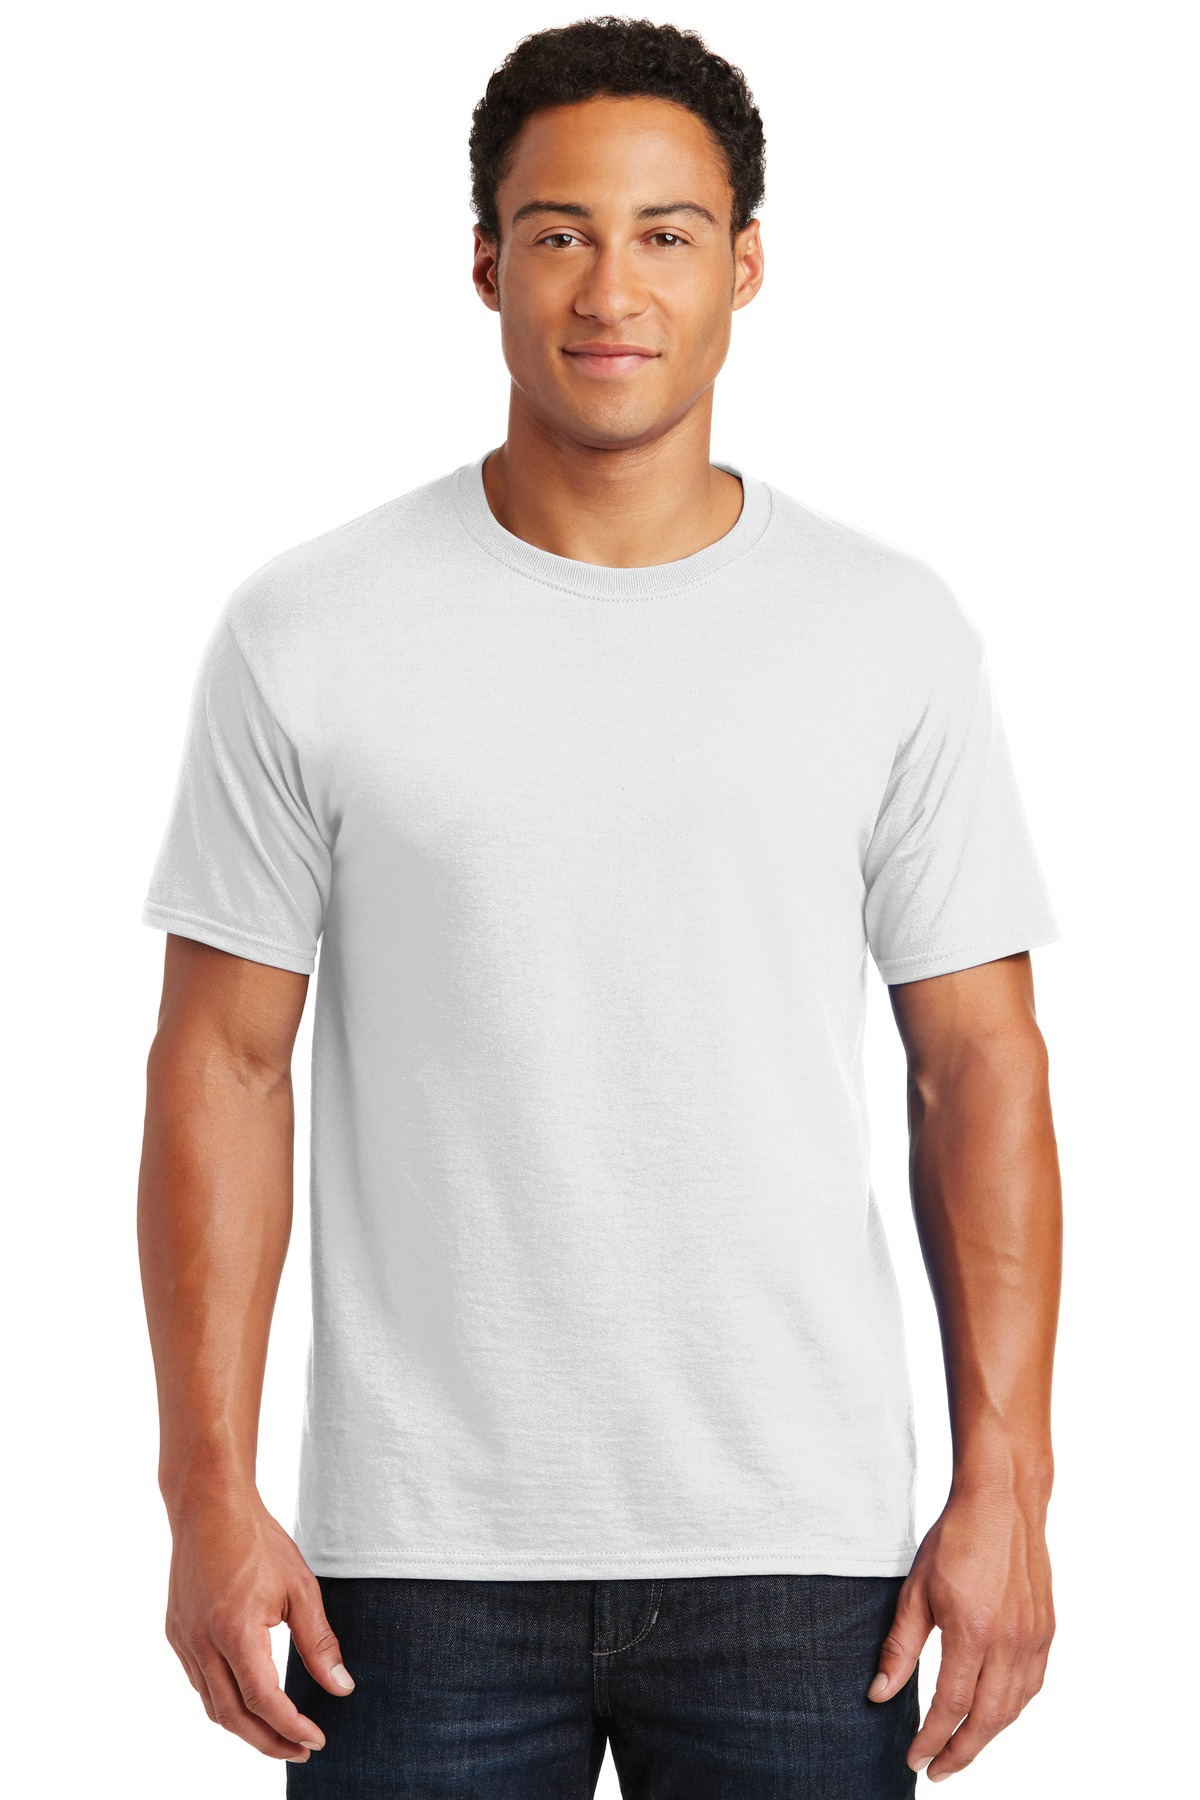 JERZEES ®  -  Dri-Power ®  50/50 Cotton/Poly T-Shirt.  29M - White